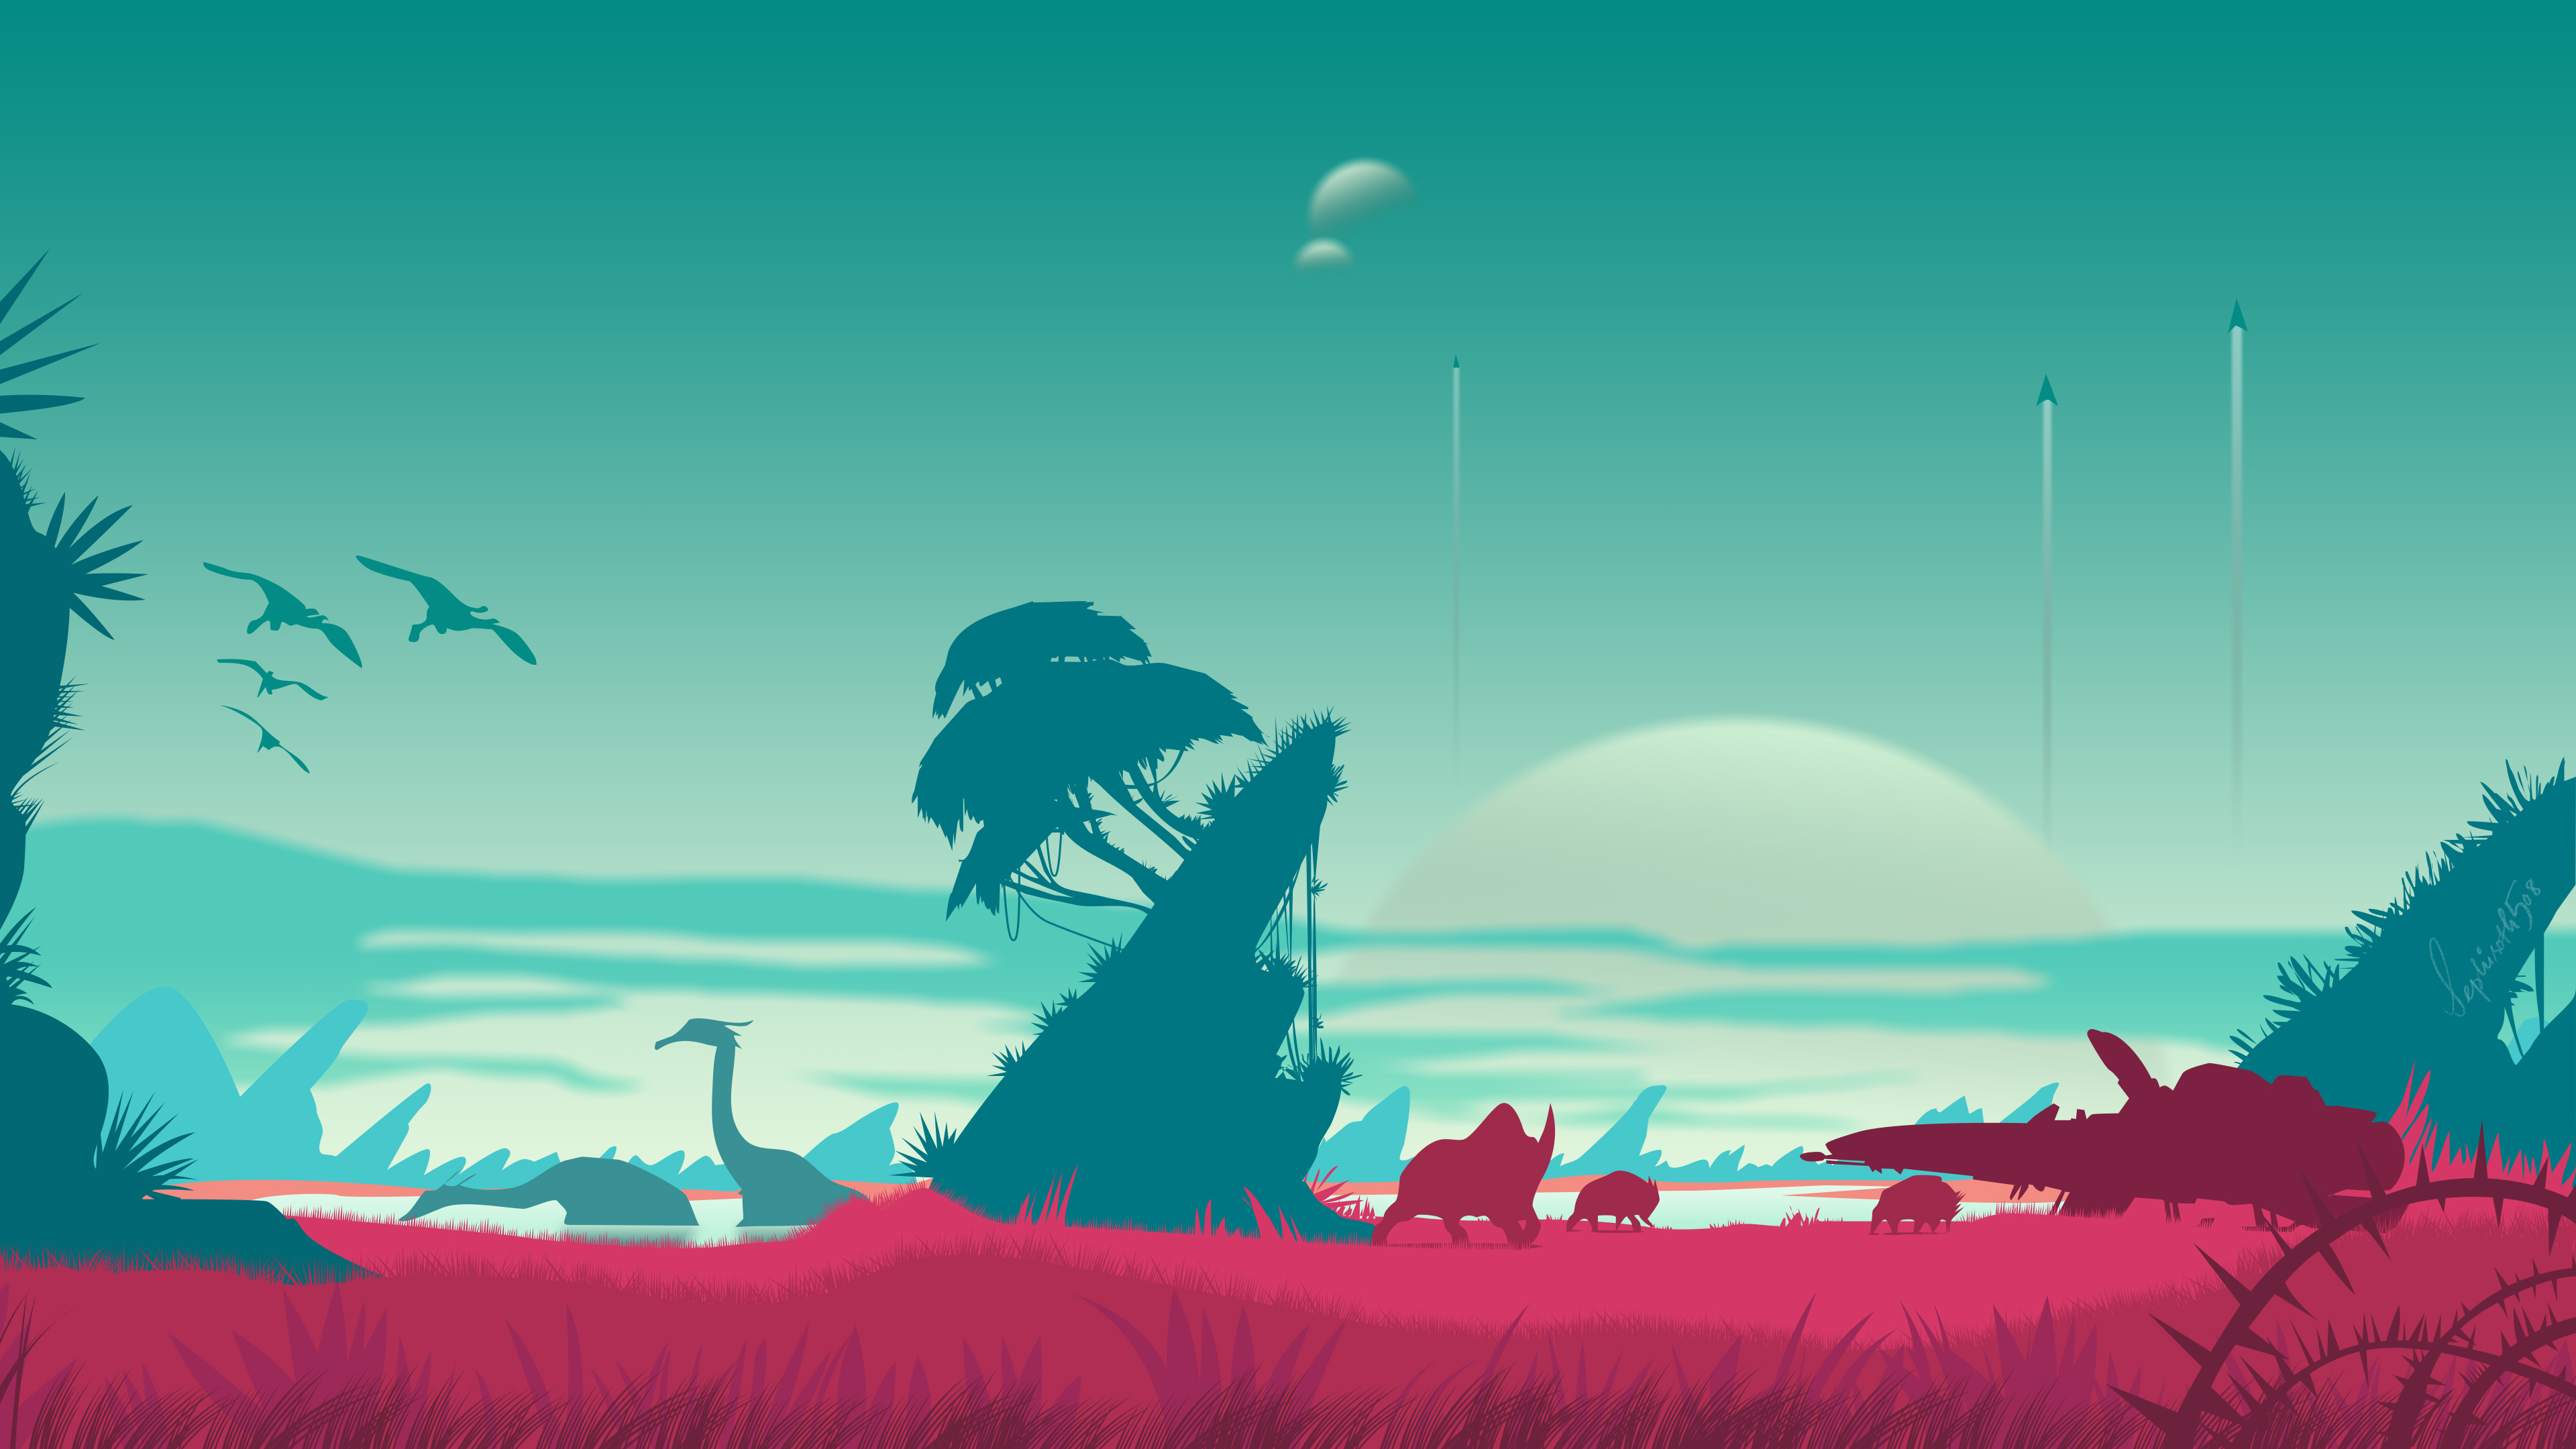 Wallpaper 4k No Mans Sky Vector Landscape 4k 2018 Games Wallpapers